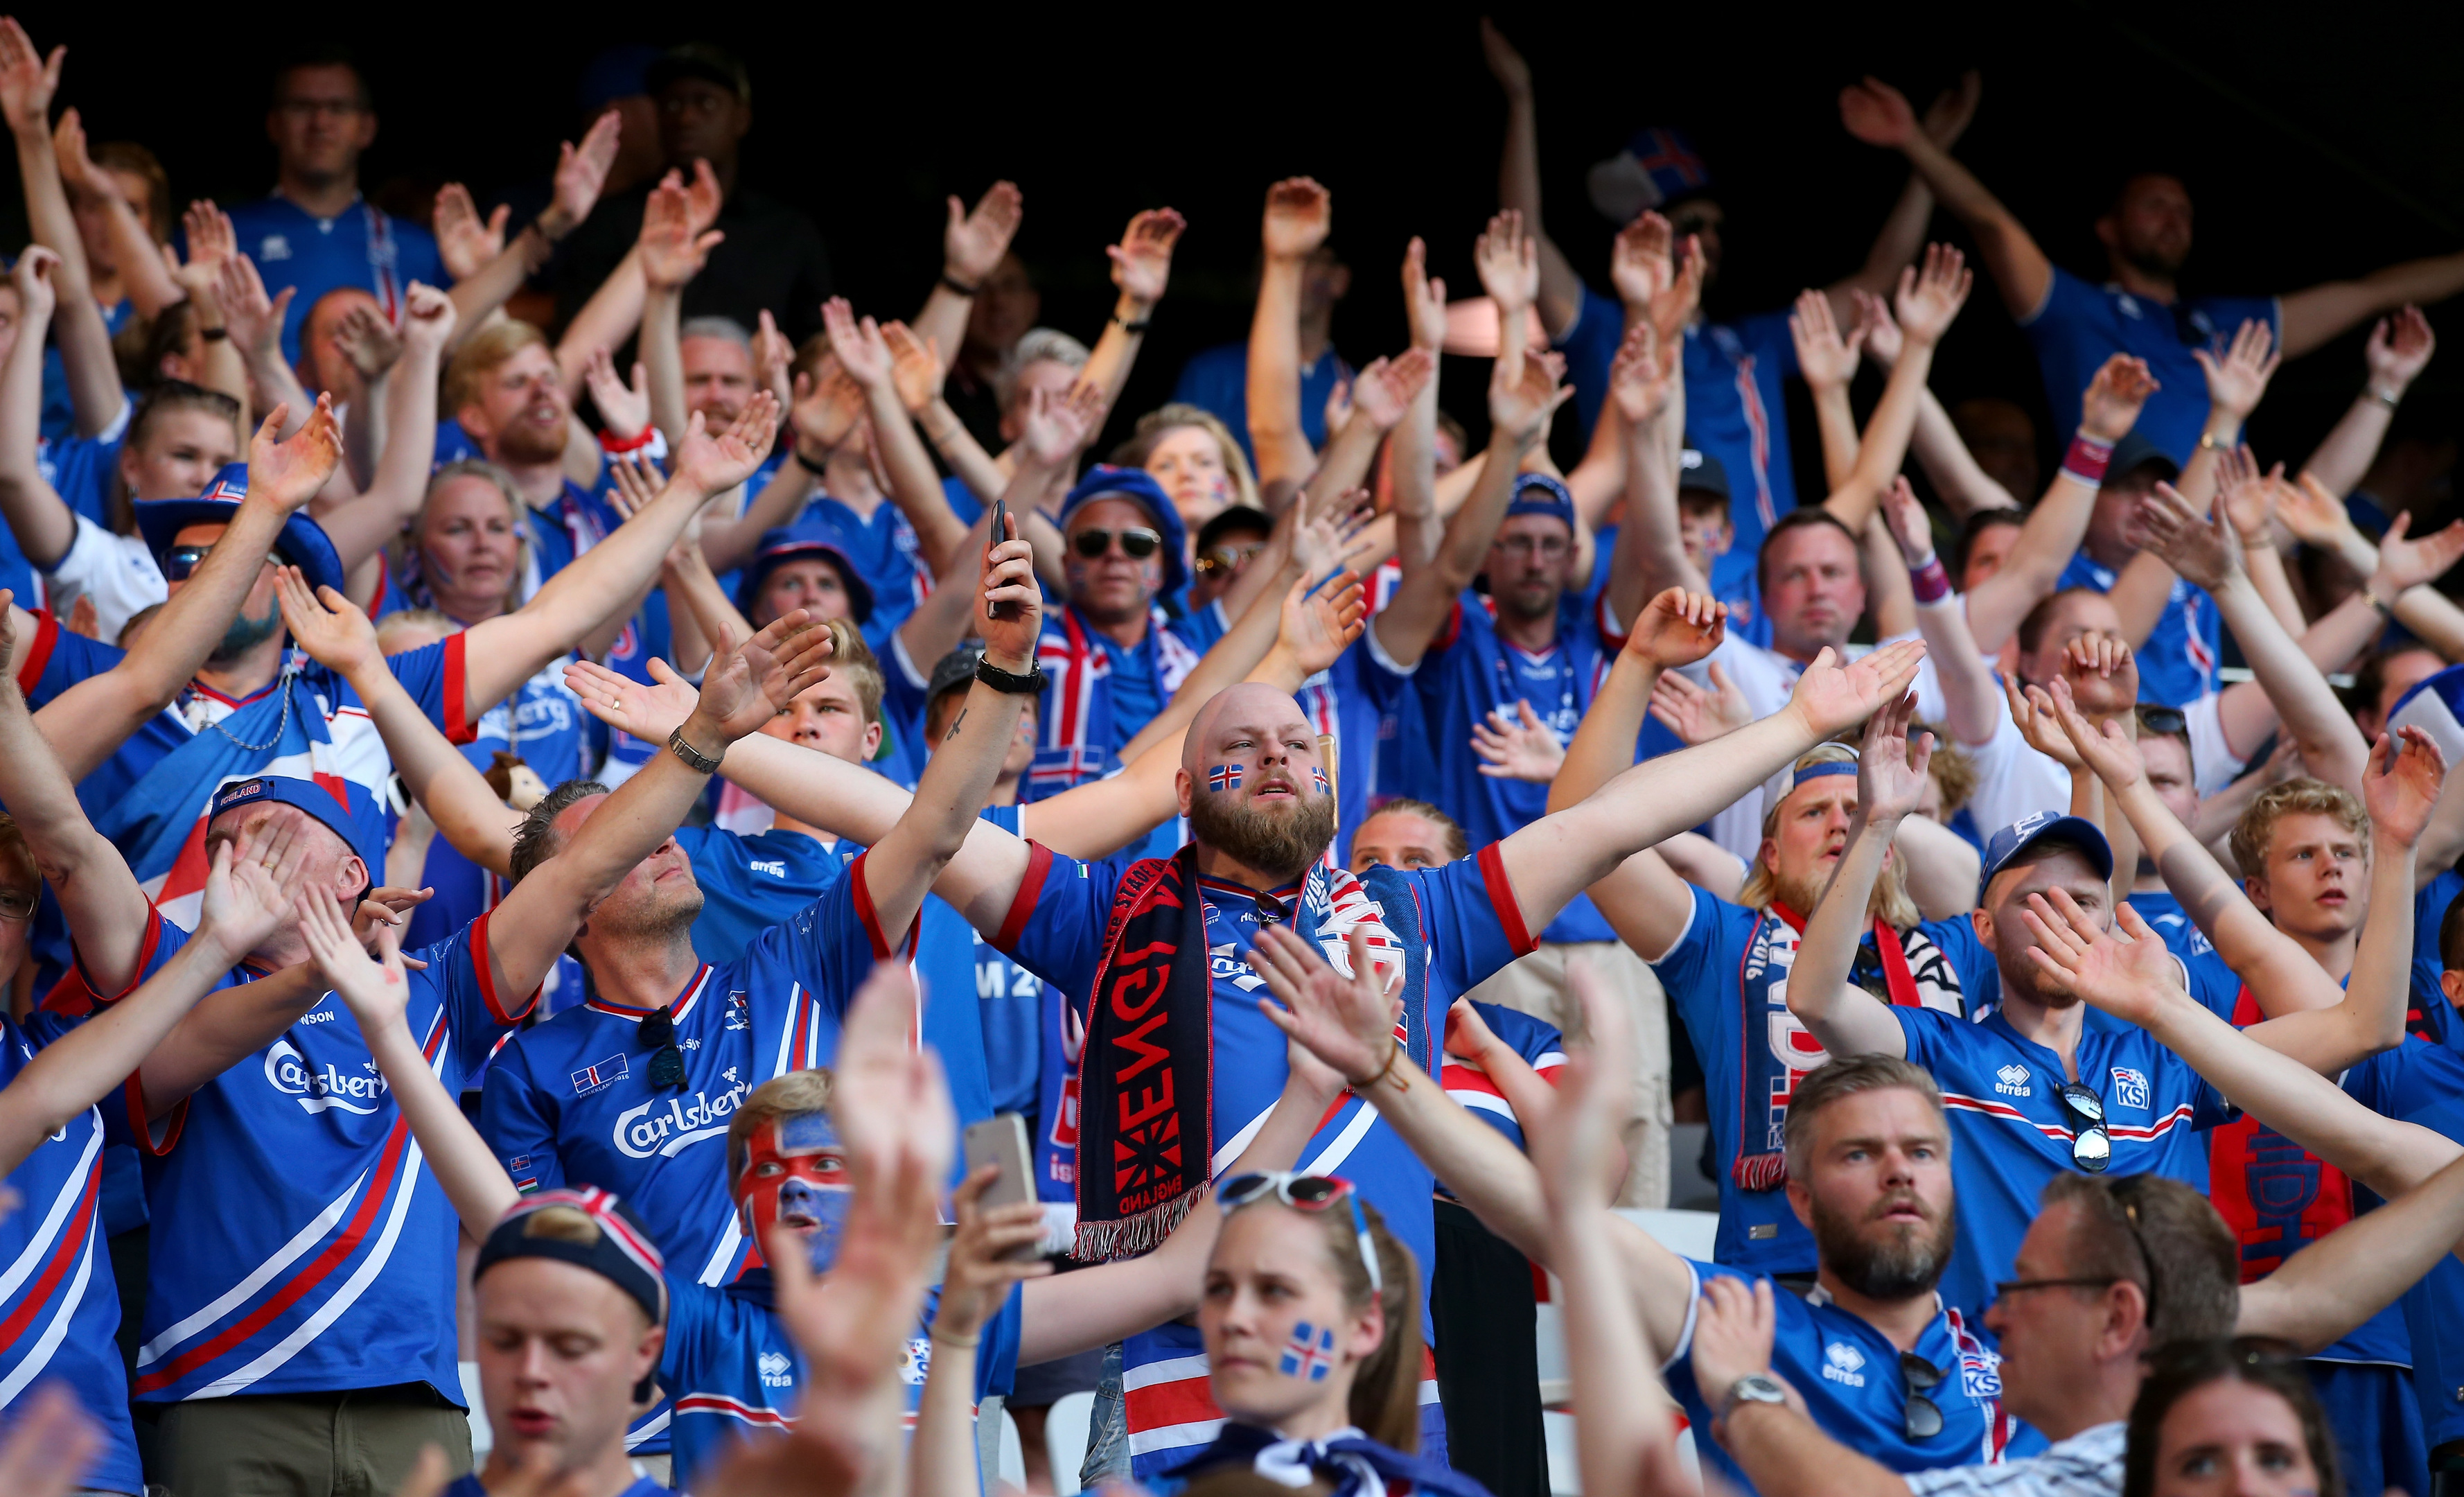 The Iceland fans love it loud